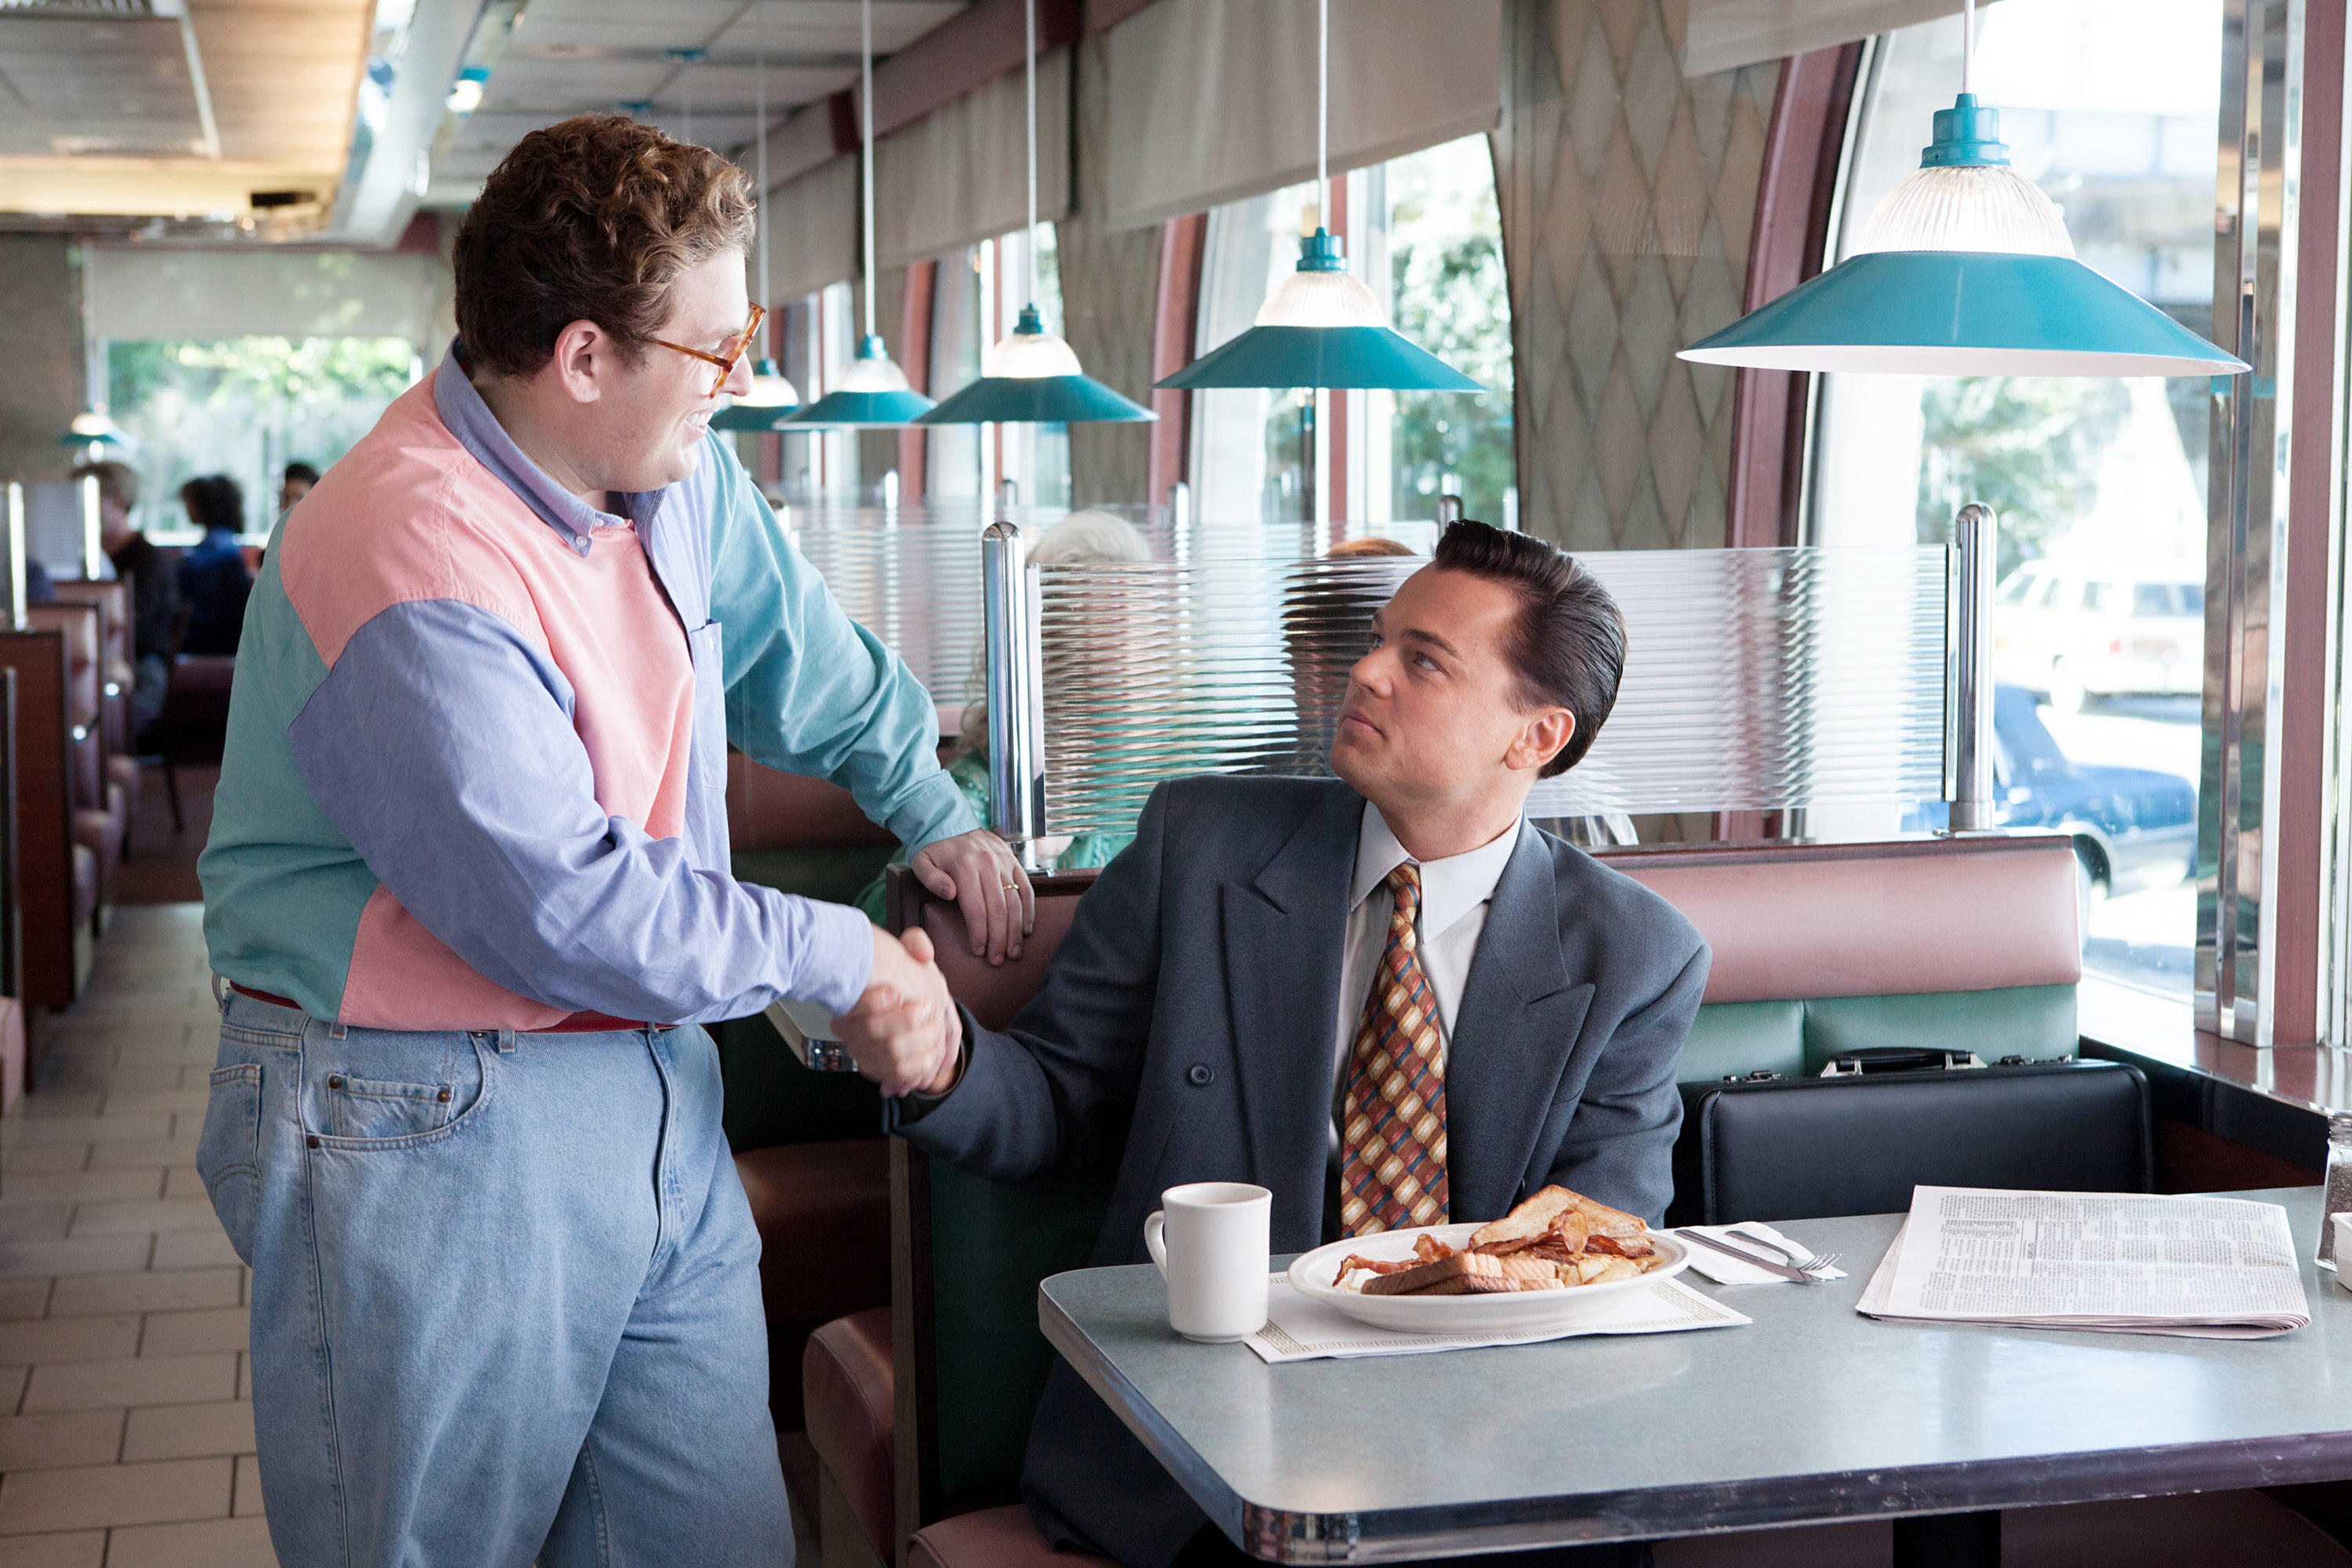 Jonah shaking Leo's hand in the film at a diner